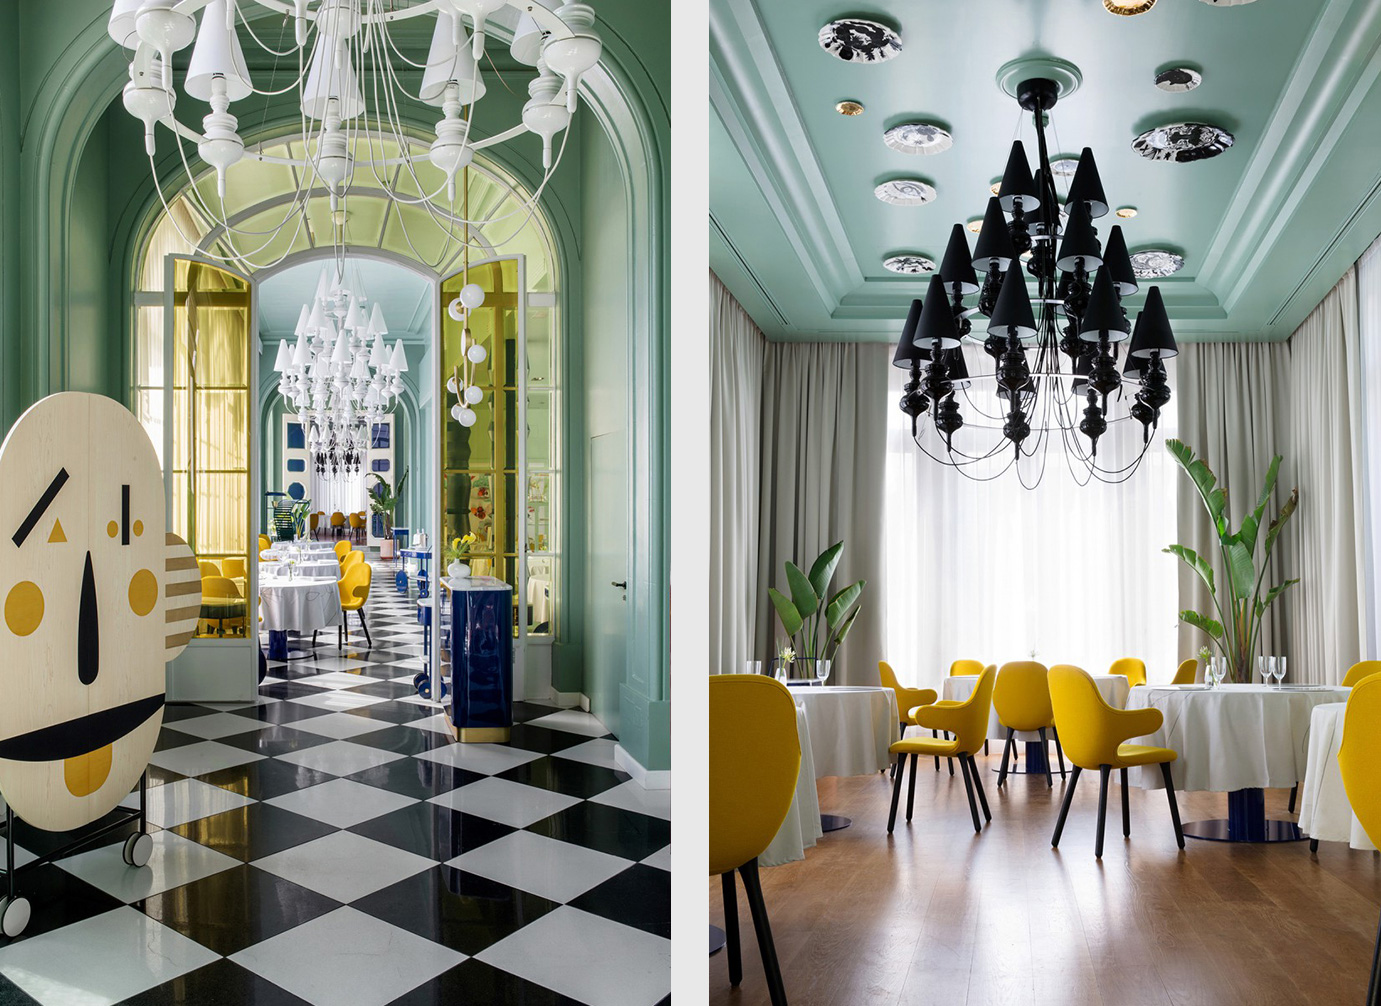 Jaime Hayón gives Madrid's La Terraza del Casino restaurant a playful refresh